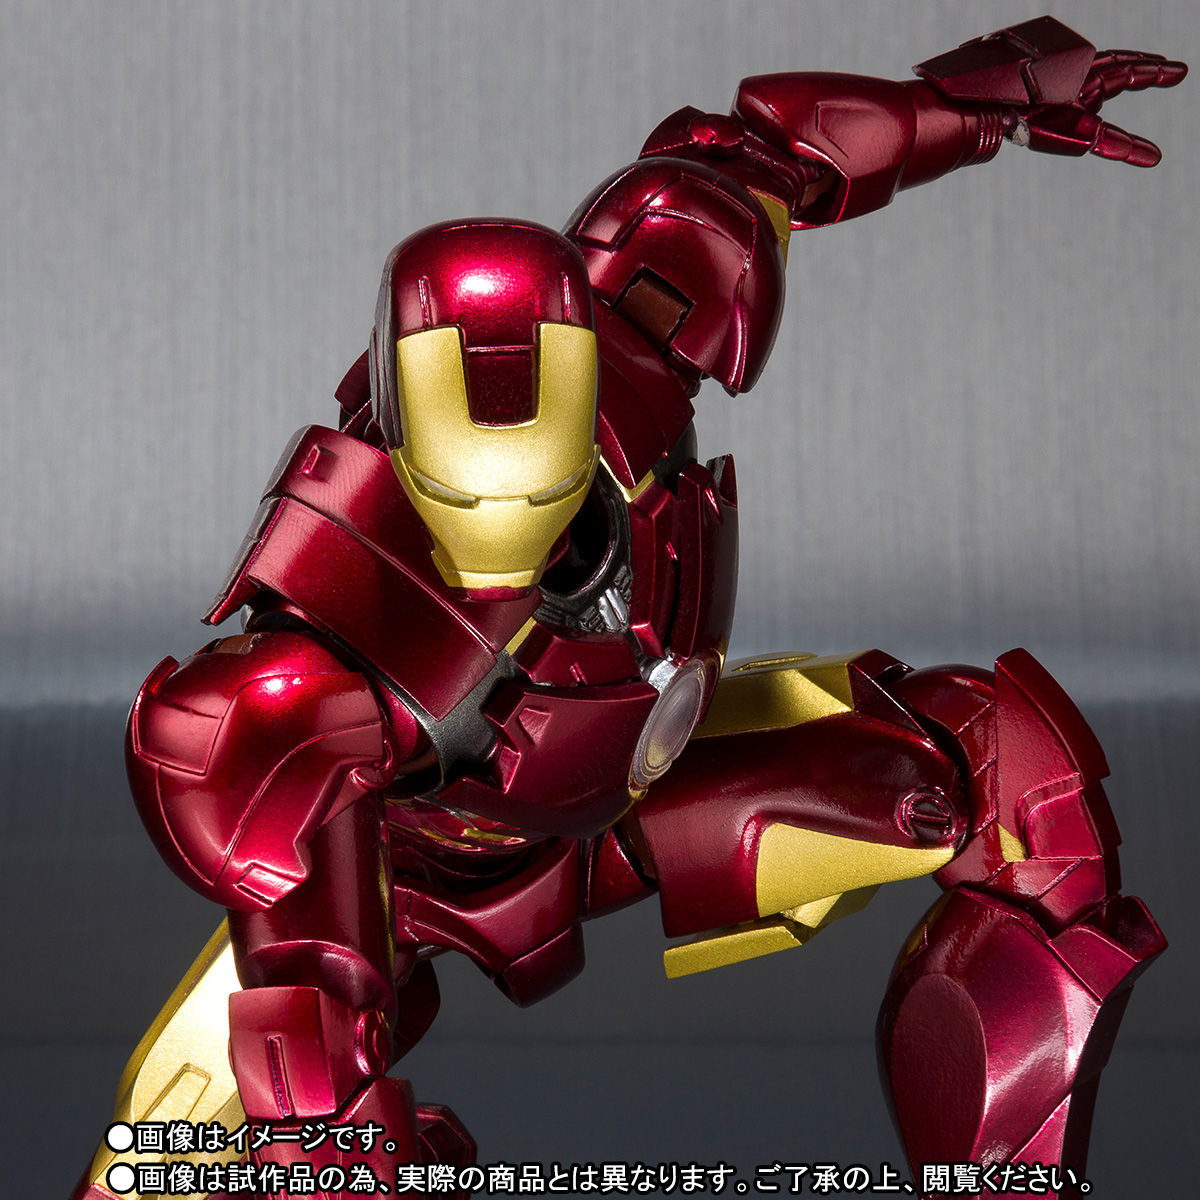 S.H.Figuarts - Iron Man Mark 4 (Limited Pre-order)